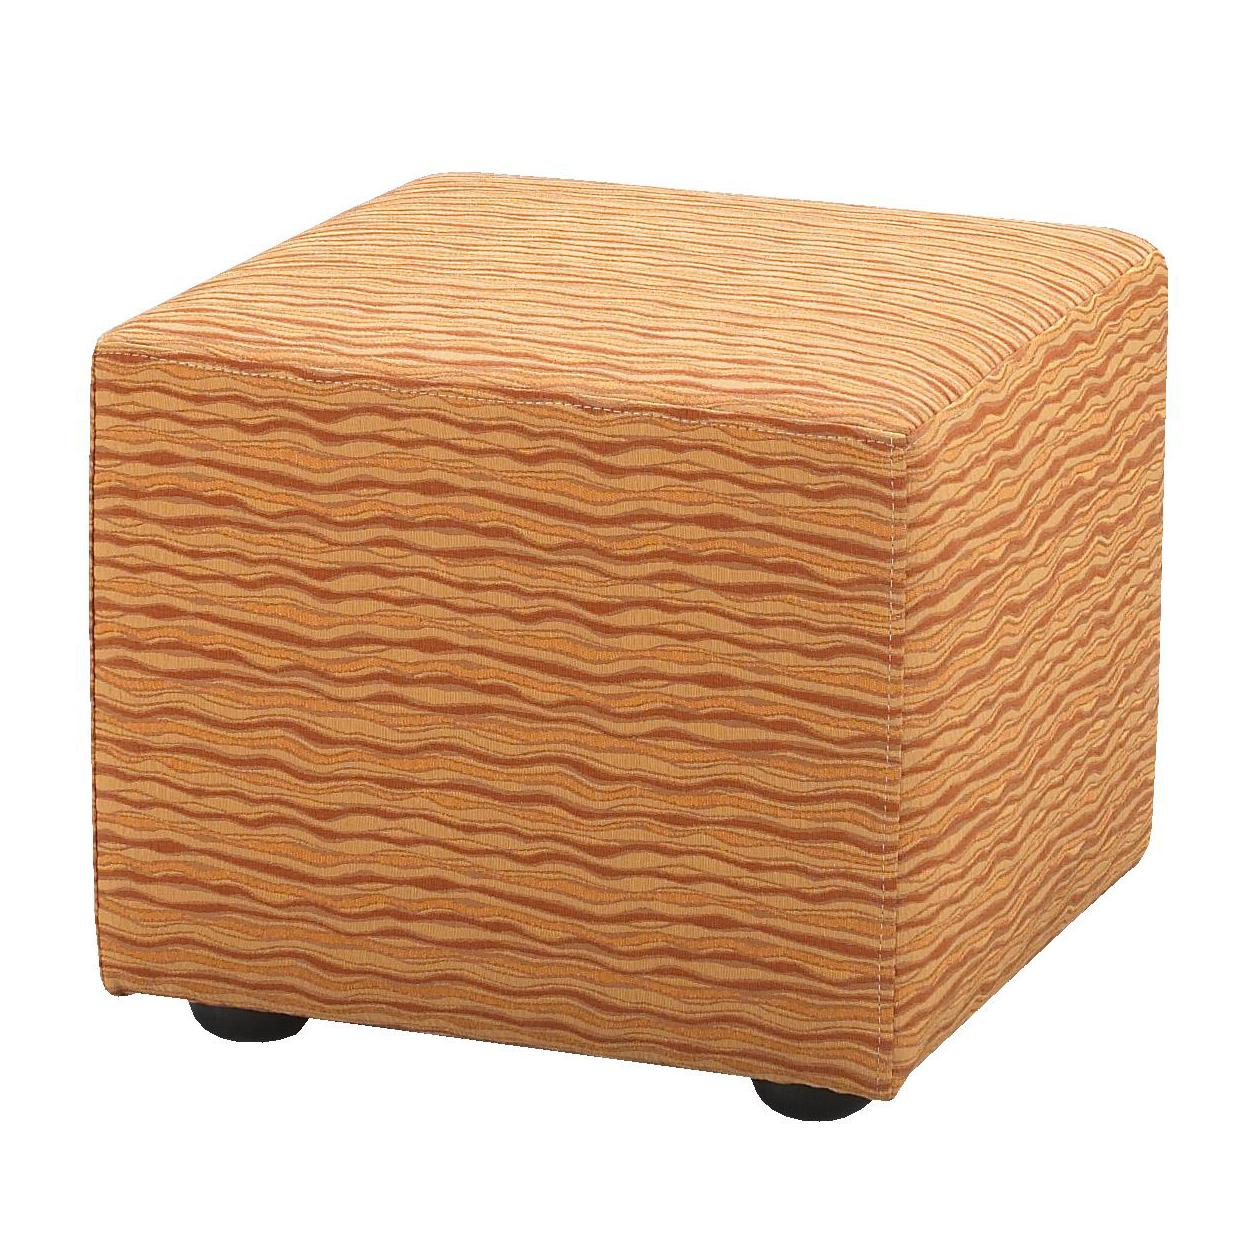 Klaussner Chairs and Accents Cube - Item Number: 8OTTO